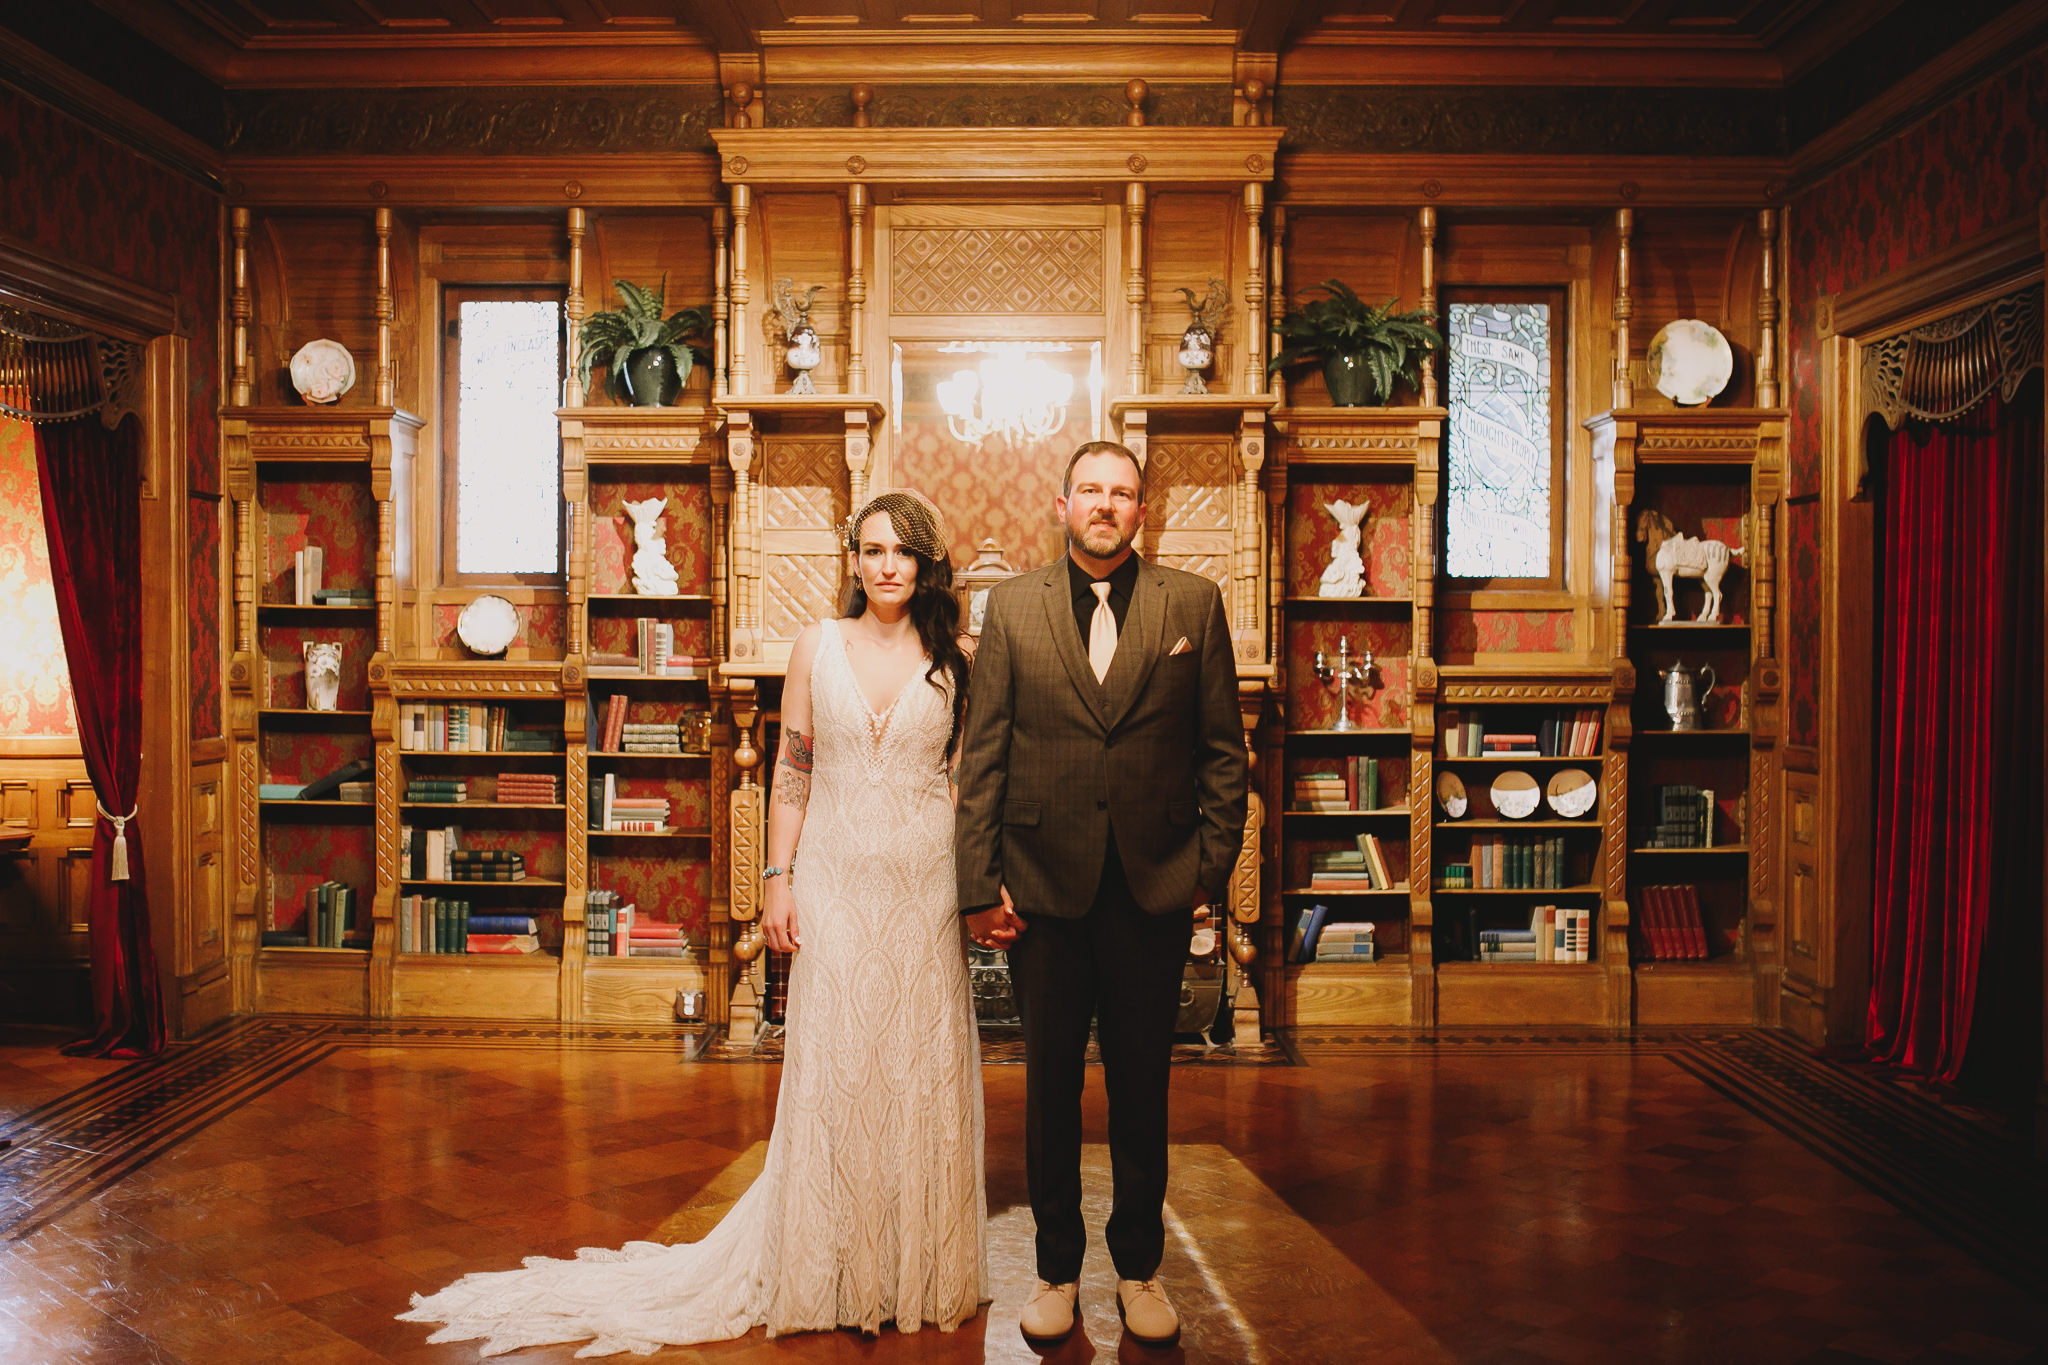 Archer Inspired Photography Sara and Aaron Winchester Mystery House NorCal San Jose California Wedding Photographer-382.jpg